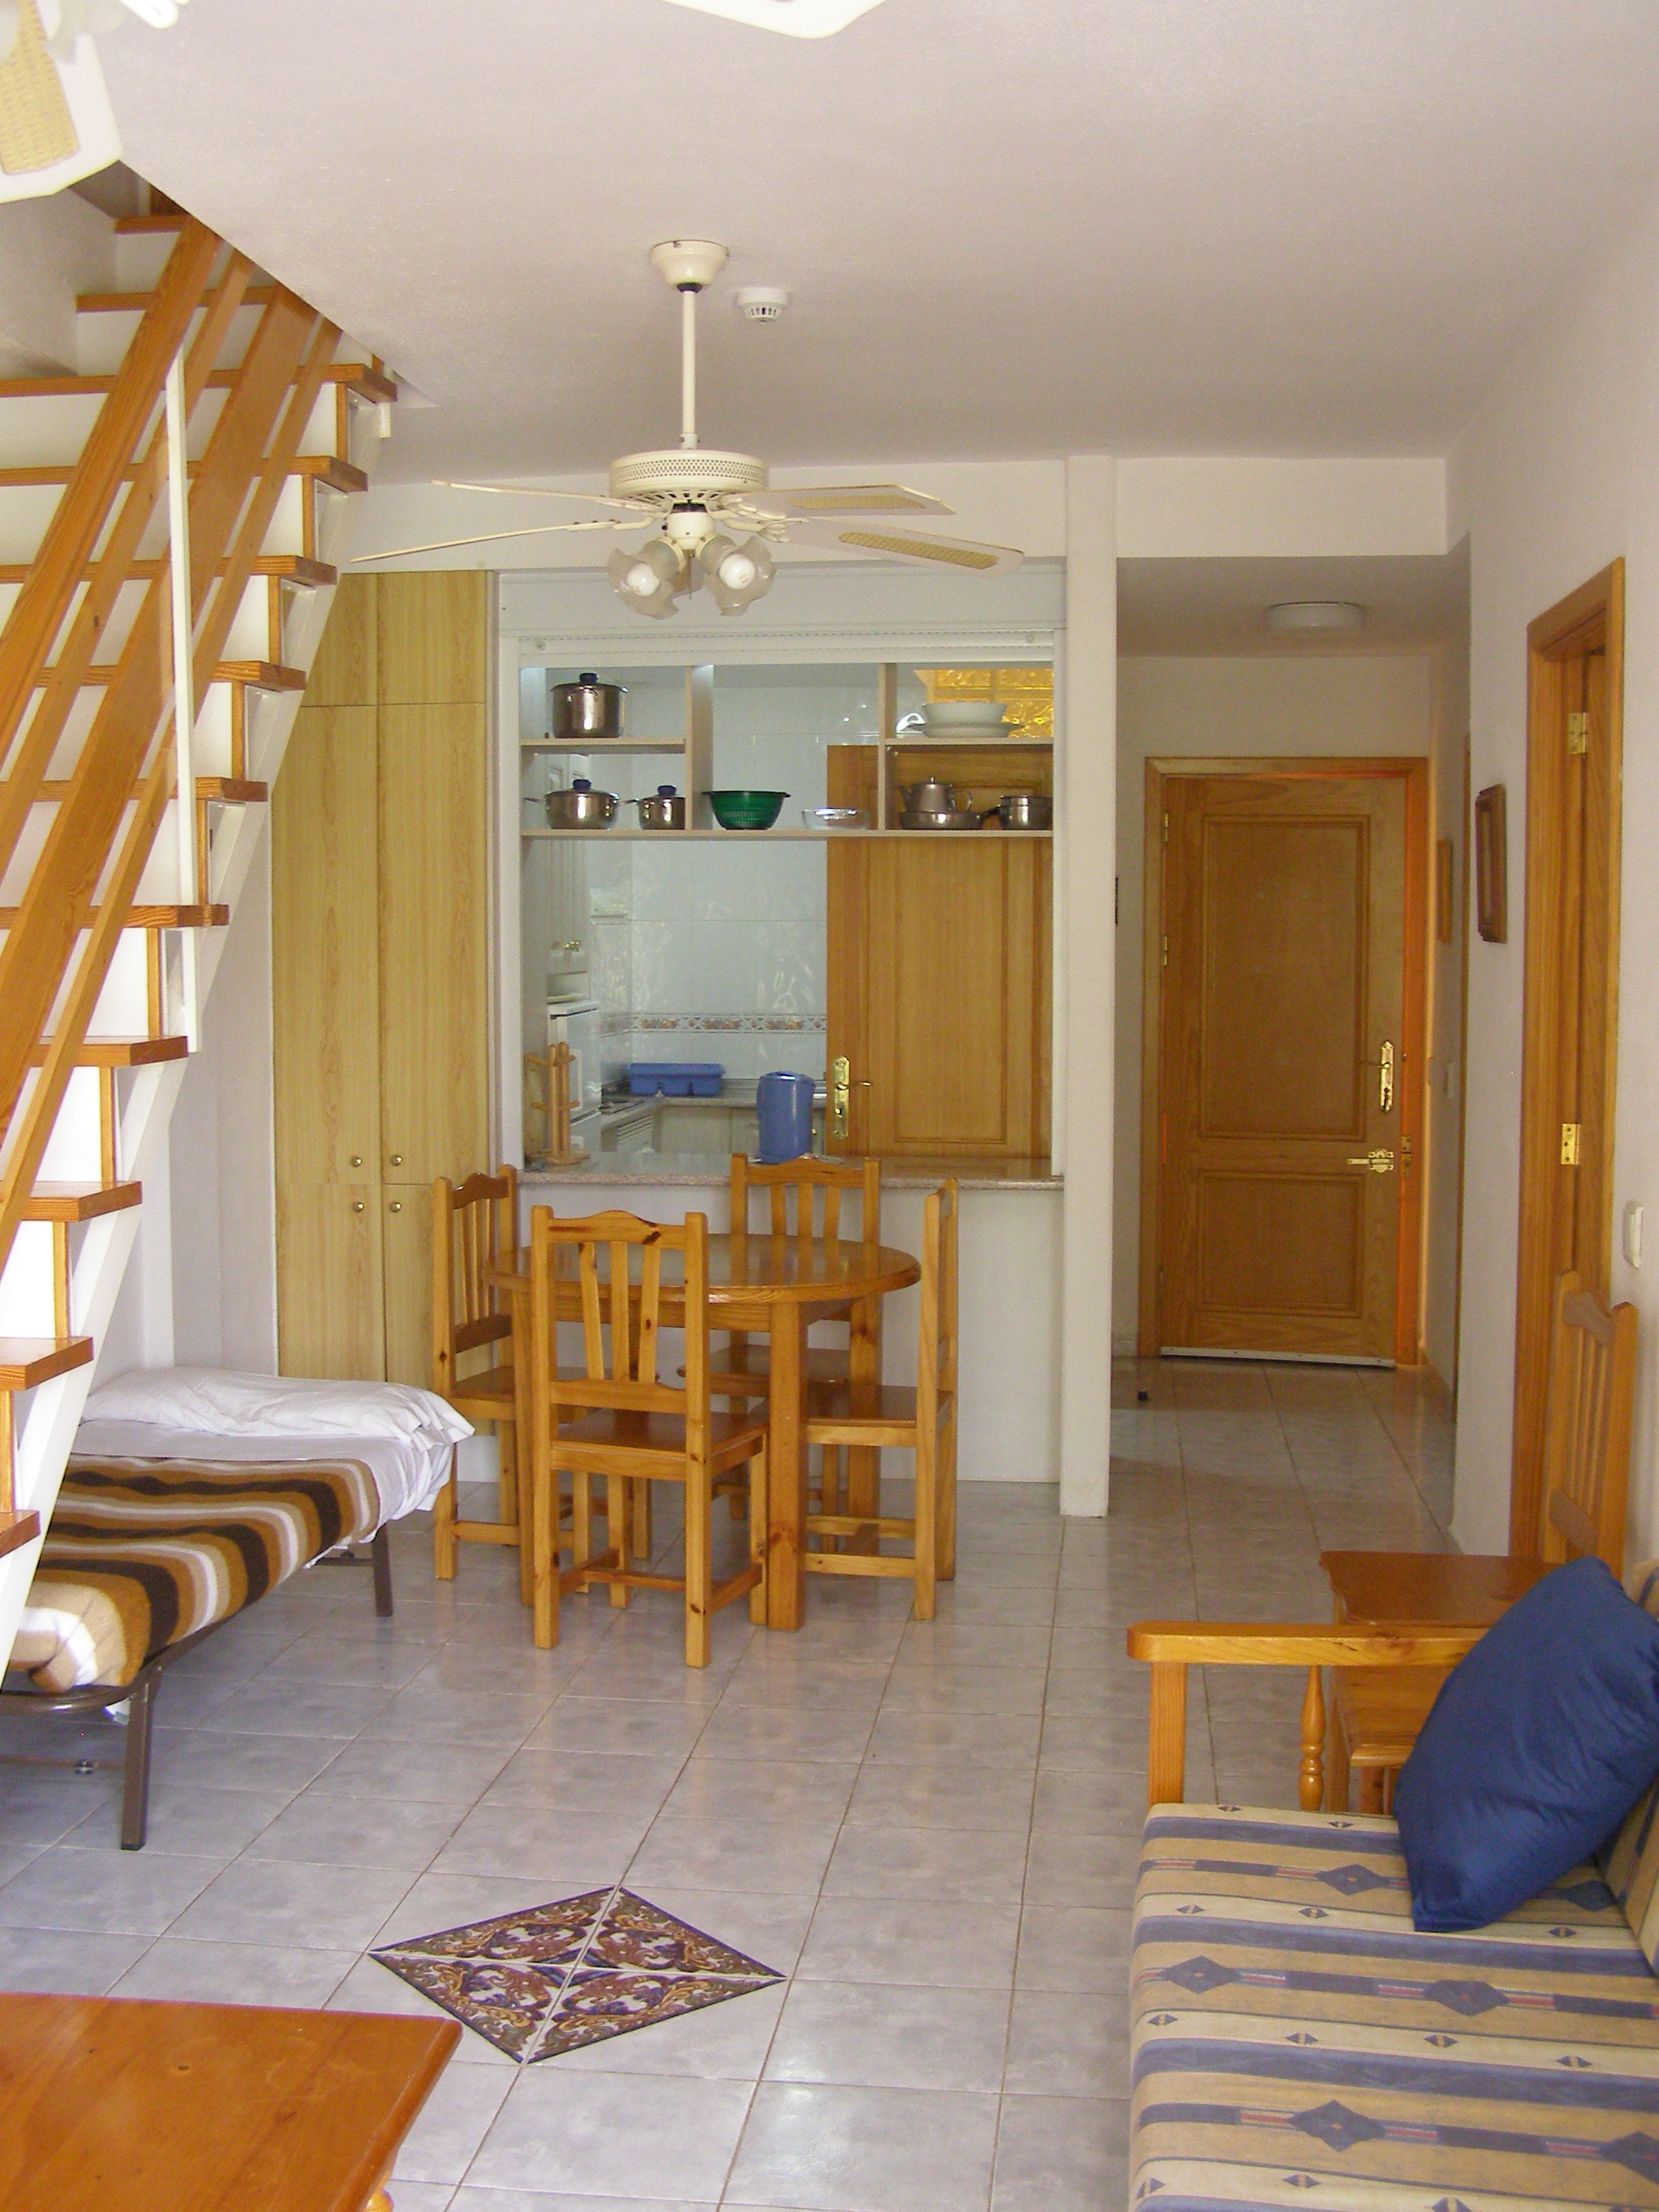 Compostela Beach Golf, 3 Bedroom Apt.